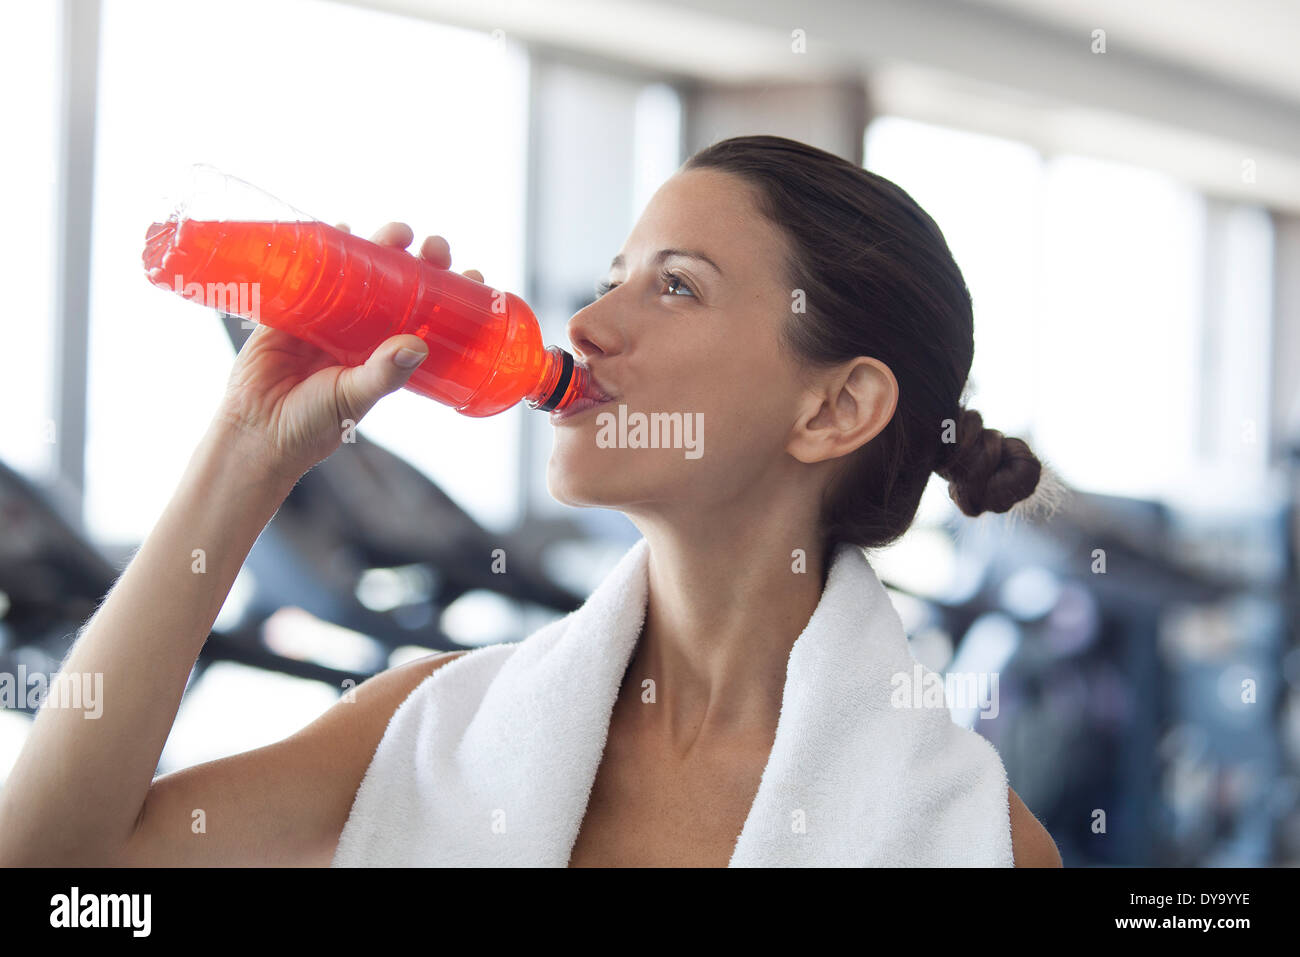 Woman hydrating after working out Stock Photo